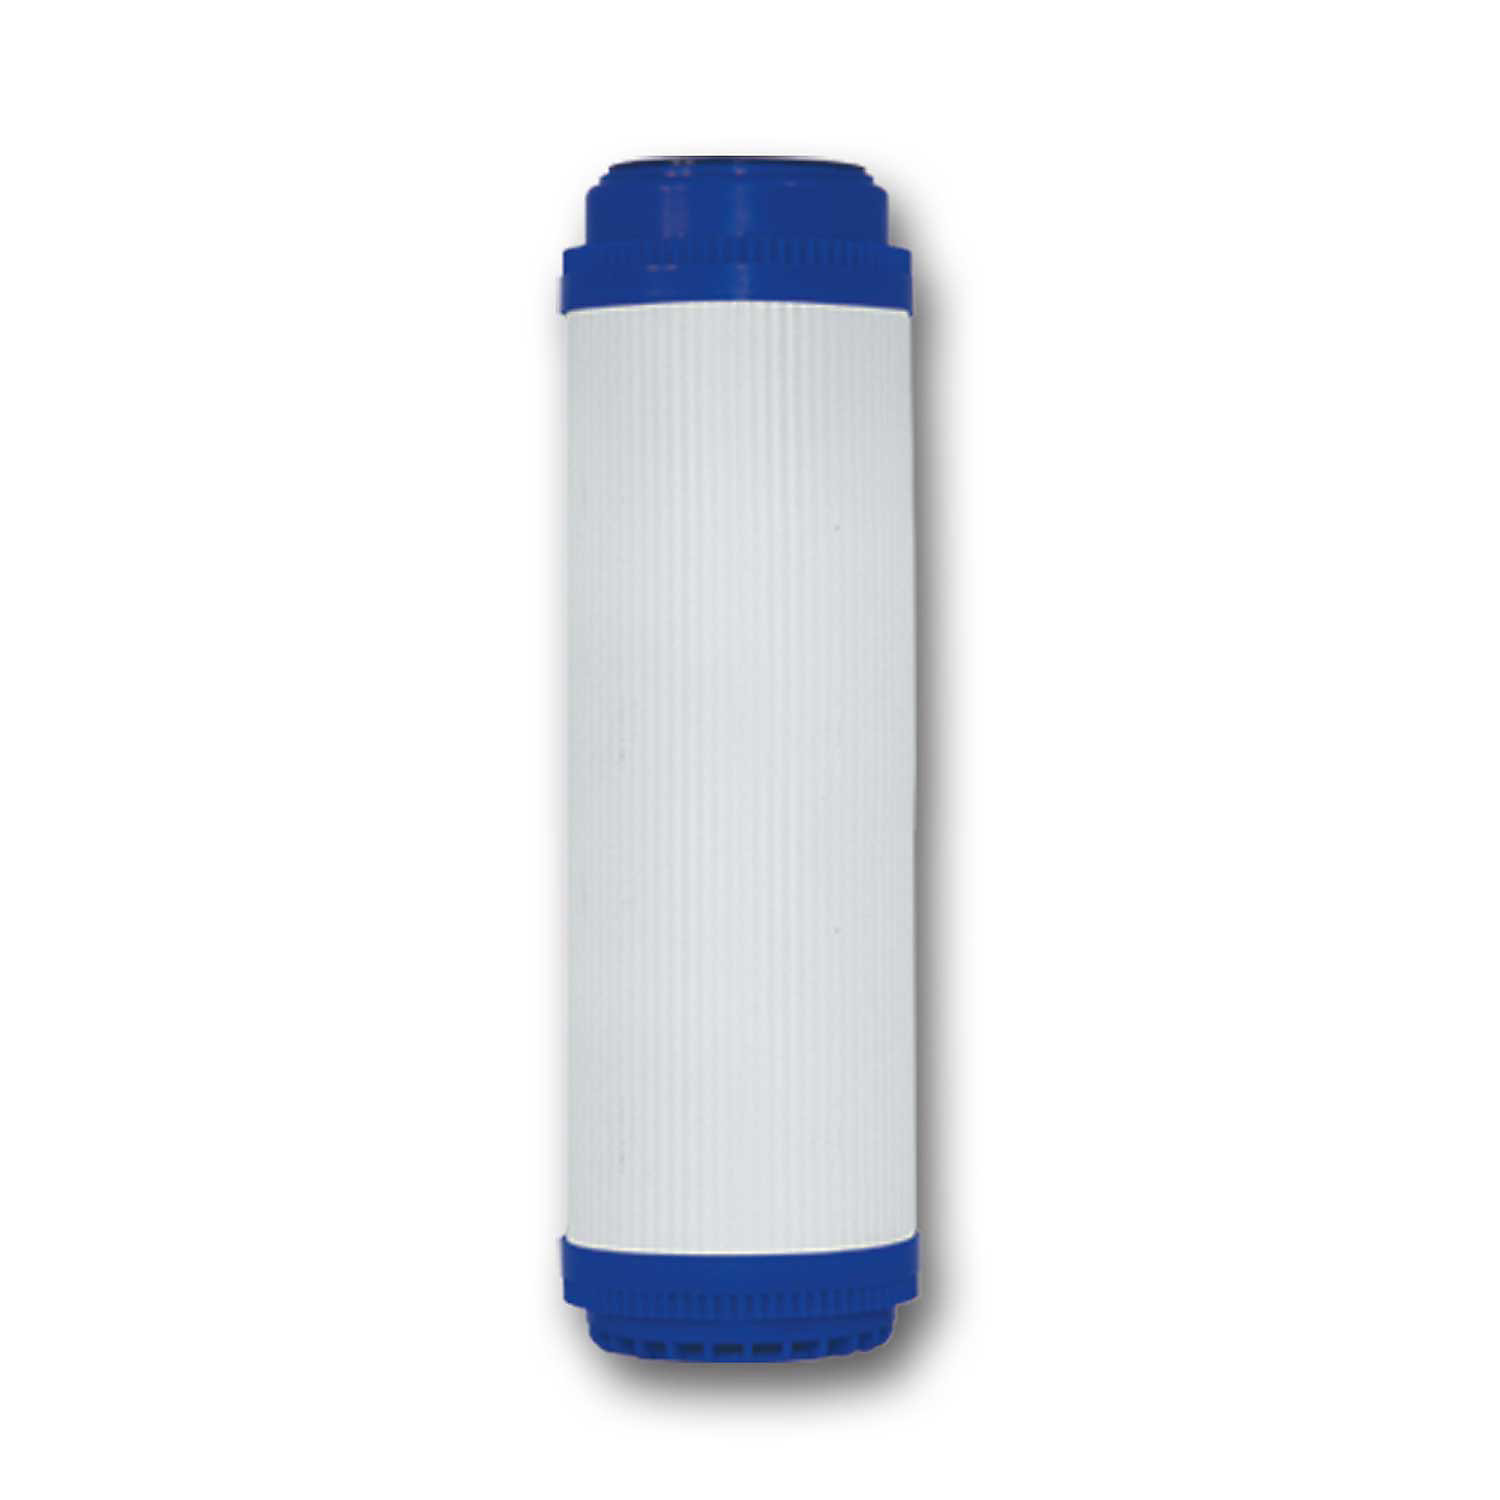 Coralife Pure Flo Ii Reverse Osmosis Granulated Activated Carbon Pre Filter Cartridge 9.7 L X 1.8 W X 2 H